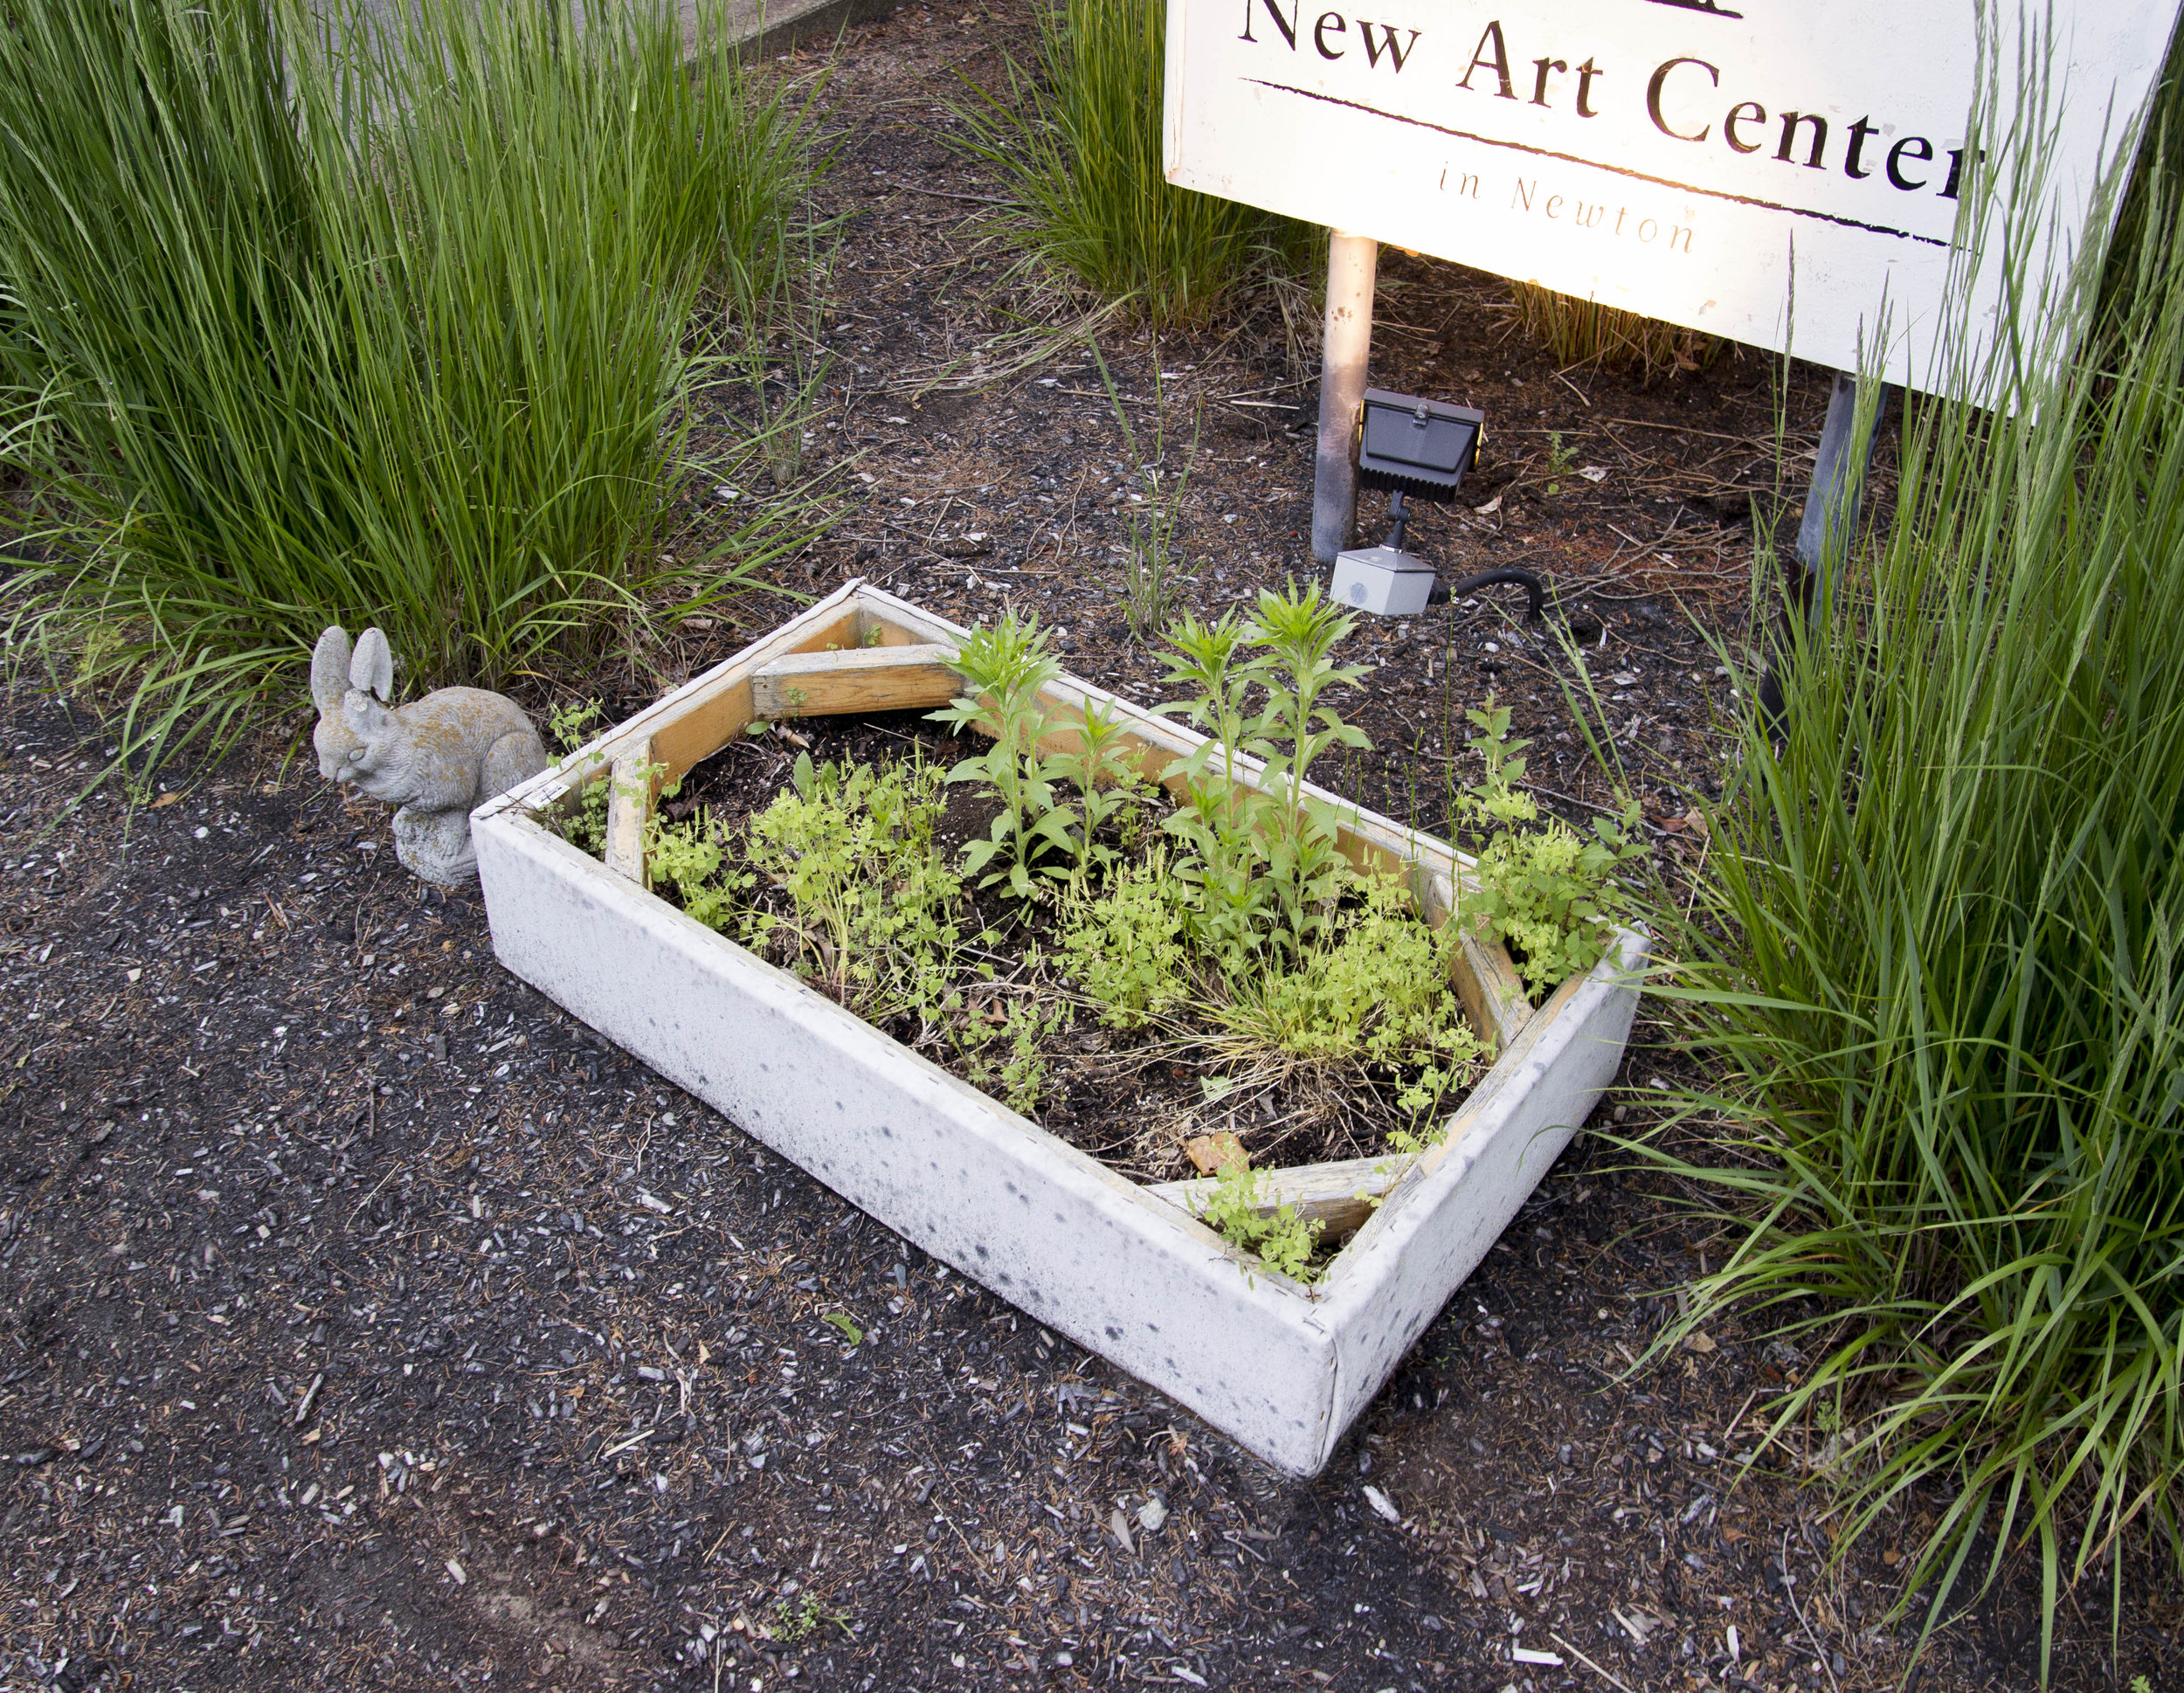 Garden  (at New Art Center) .  2015. Canvas, wood, paint, metal staples, soil, plants